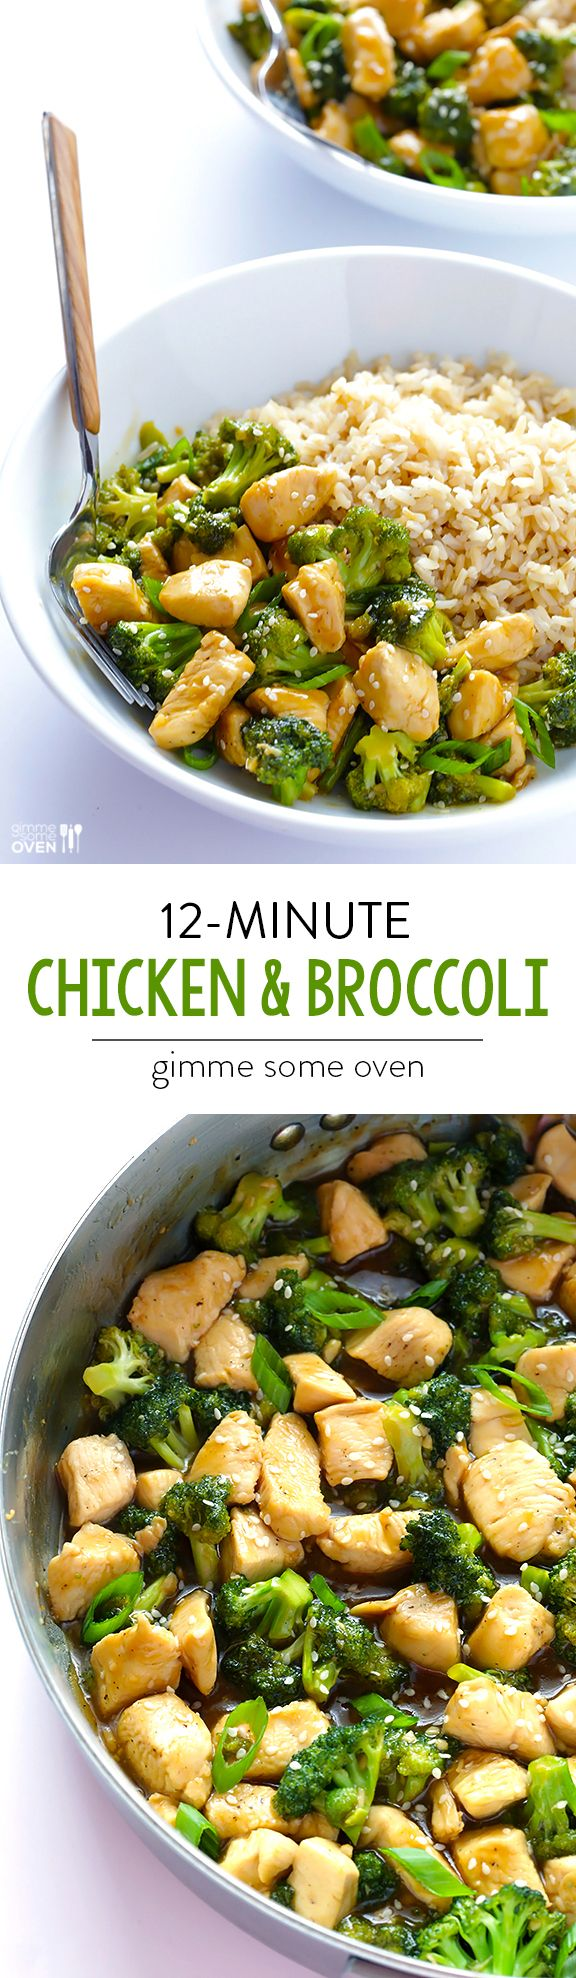 12-Minute Chicken & Broccoli — quick and easy to prepare, and perfect when served over rice or quinoa or just plain!